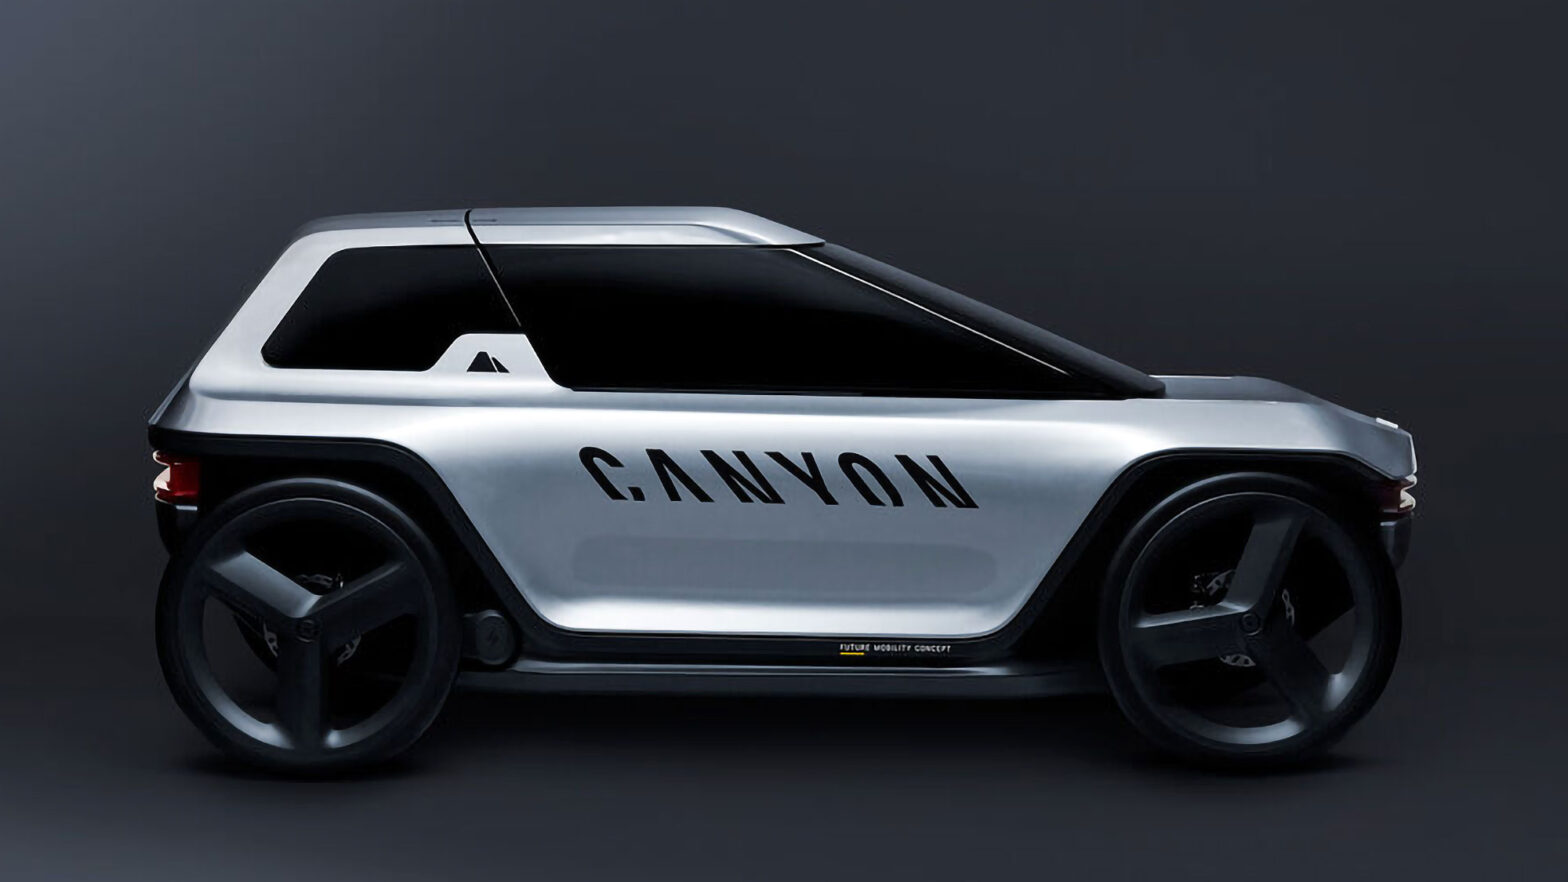 Canyon Bicycles Future Mobility Concept